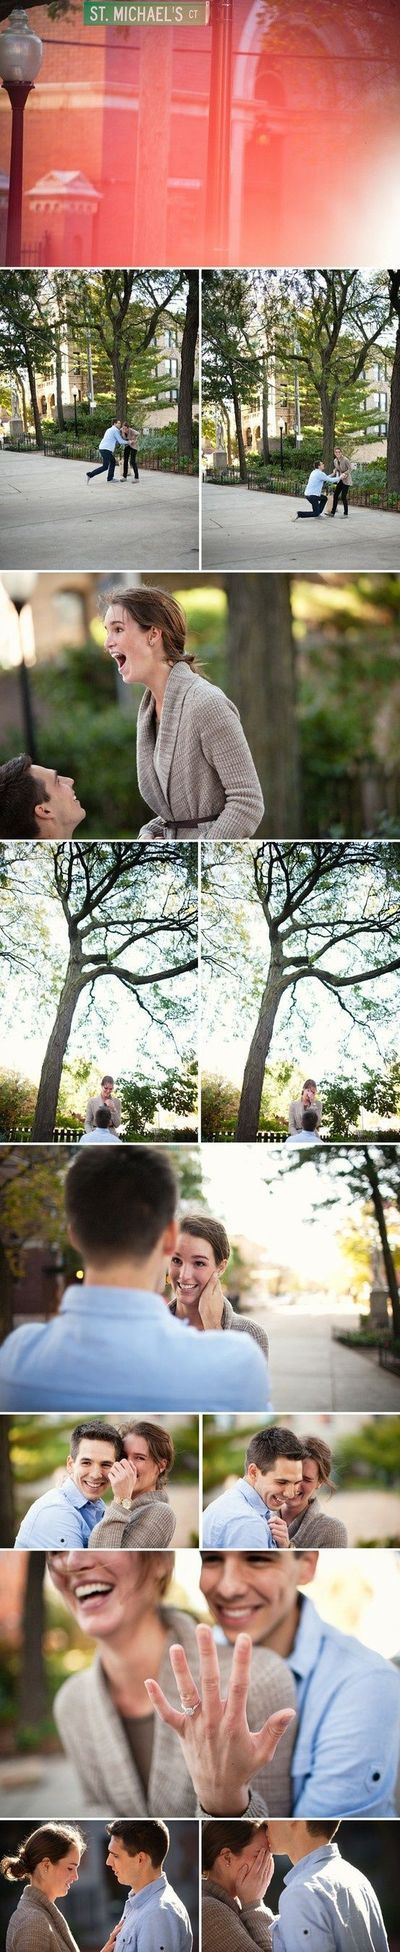 Reasons to hire a photographer for the proposal....